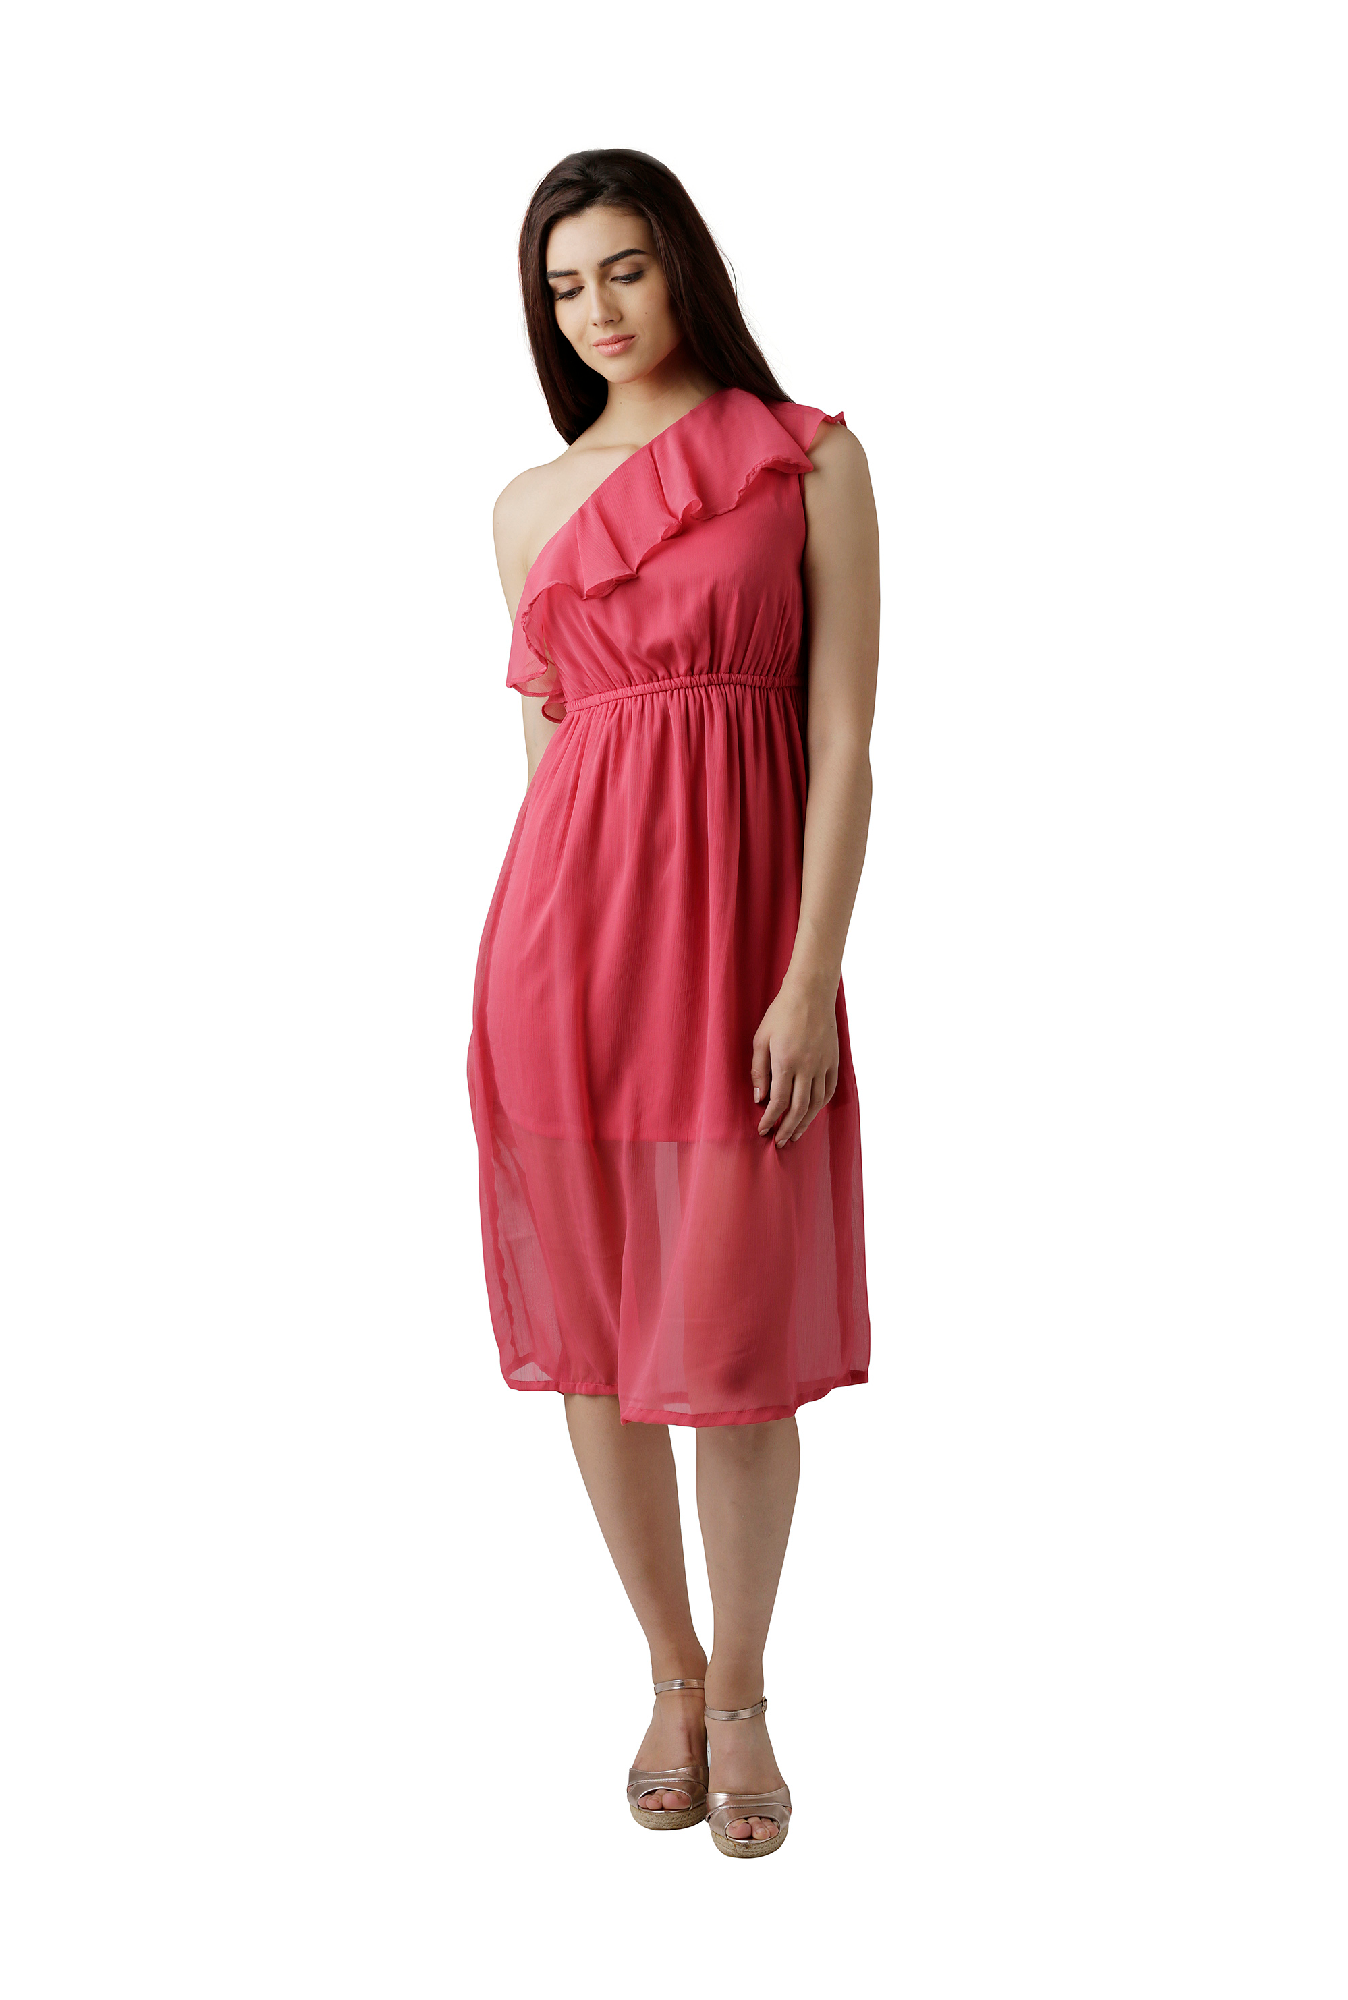 5a5b2c3e6f13 Buy Miss Chase Pink Relaxed Fit Midi Dress for Women Online ...